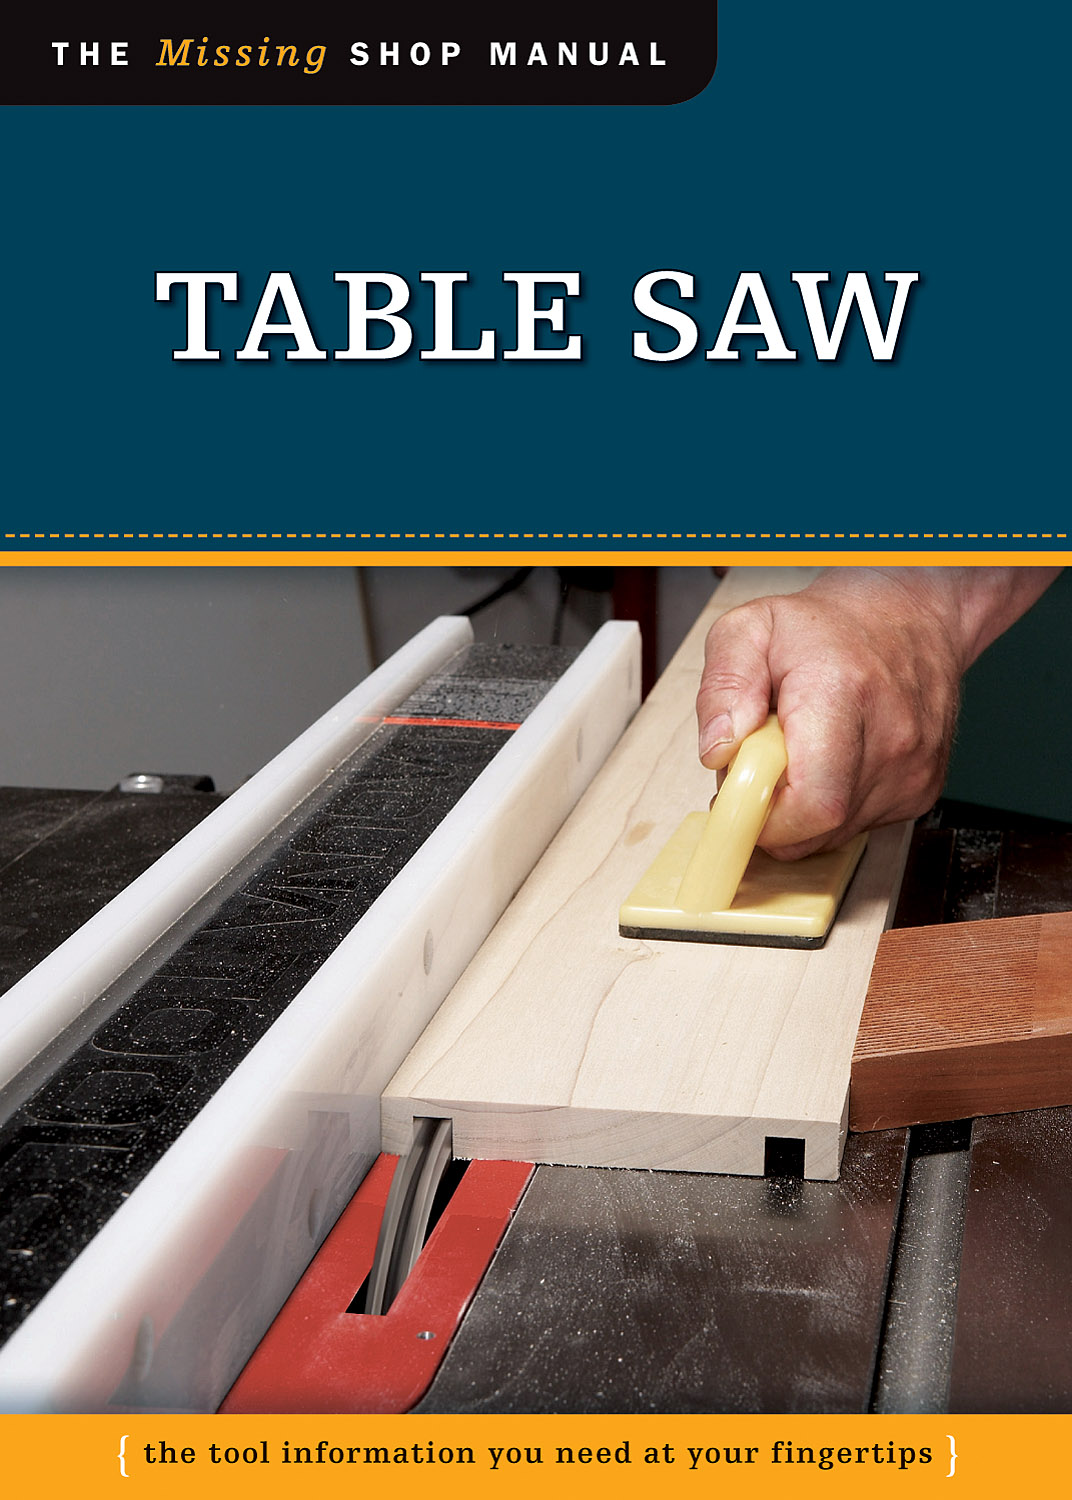 Tablesaw - The Missing Shop Manual